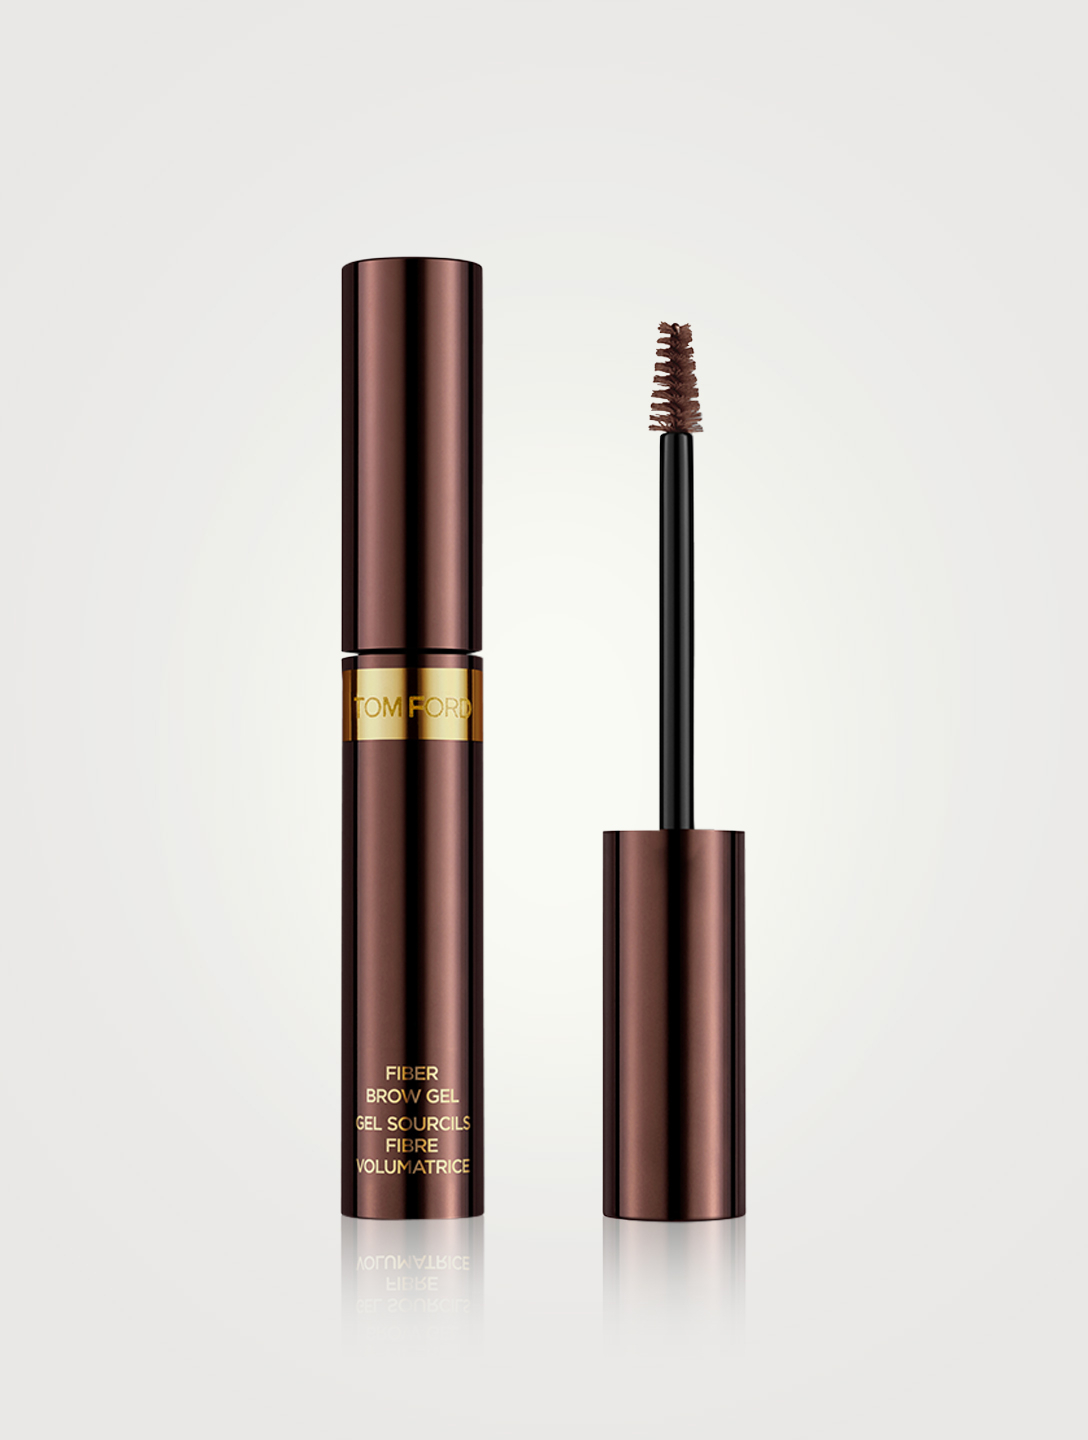 TOM FORD Gel sourcils fibre volumatrice Beauté Bronze